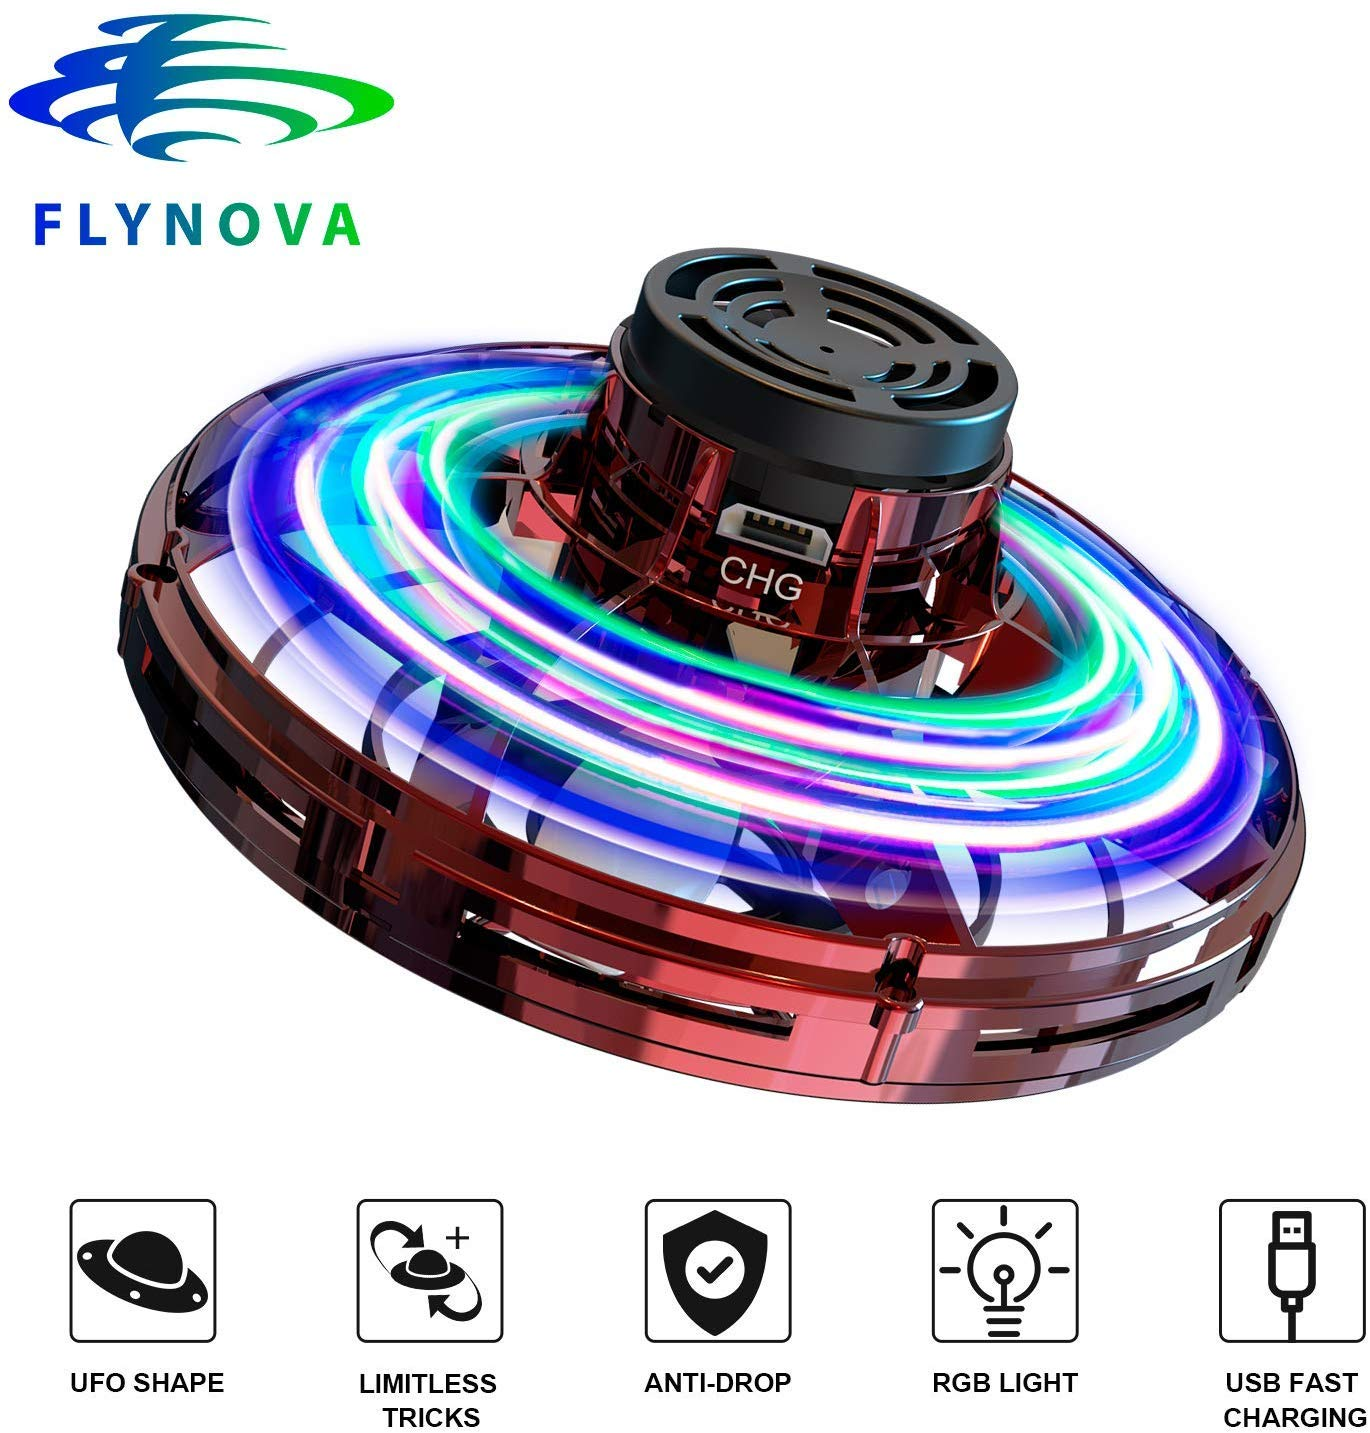 FRSWAY Flynova Flying Toy Hand Operated Drones for Kids or Adults Finger Controll Mini UFO Drone with 360/°Rotating and Shinning LED Lights Adult Gift for Surprises and Fun